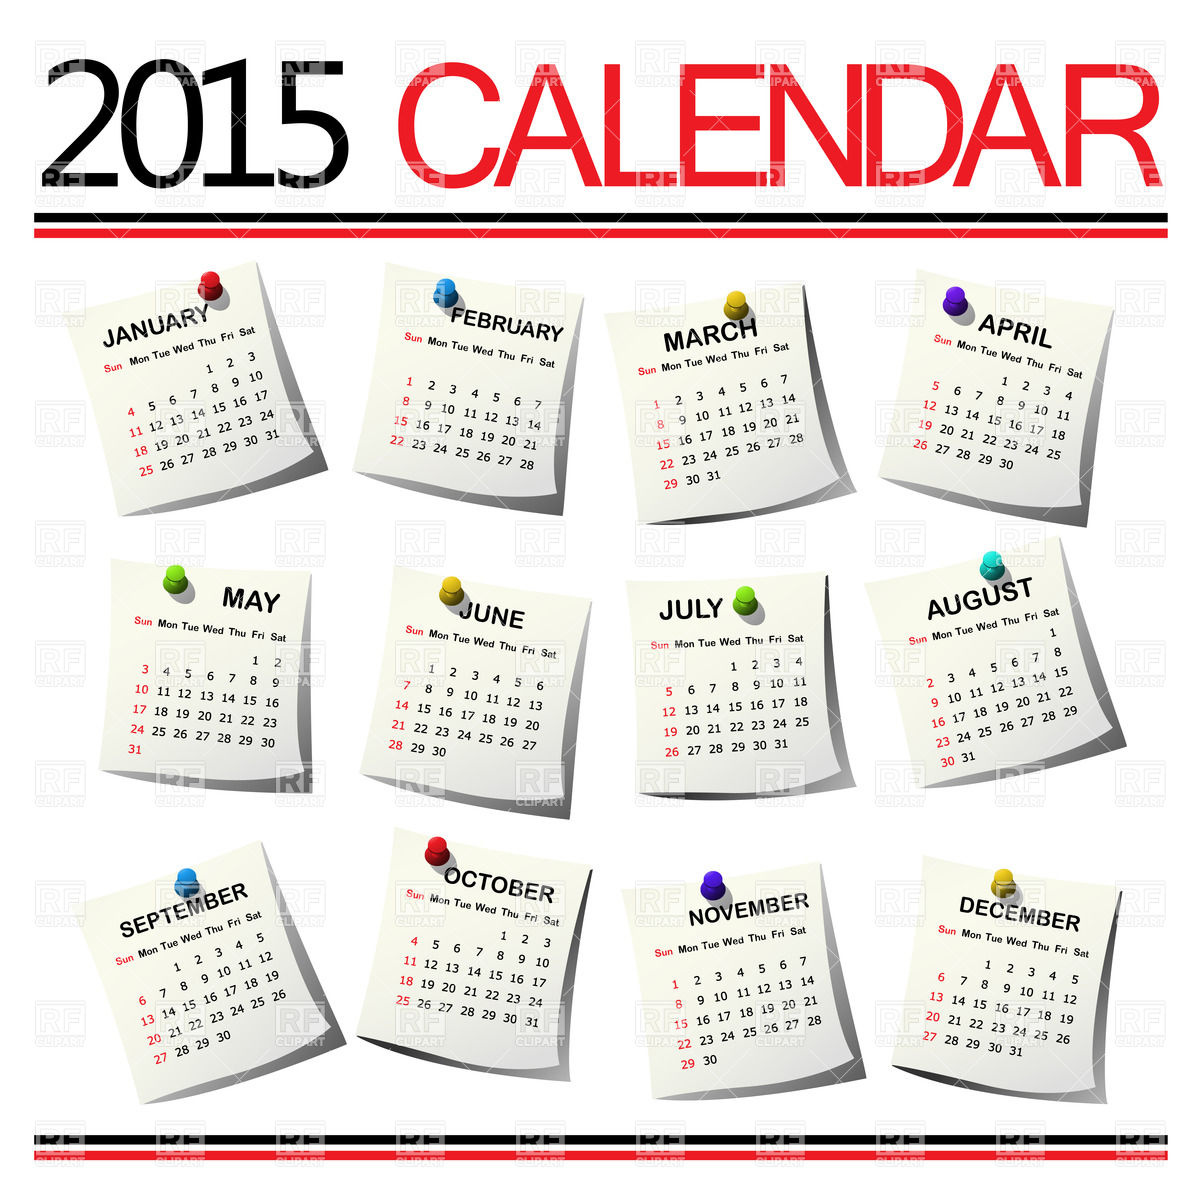 1 year calender clipart graphic free download 1 year calender clipart - ClipartFest graphic free download